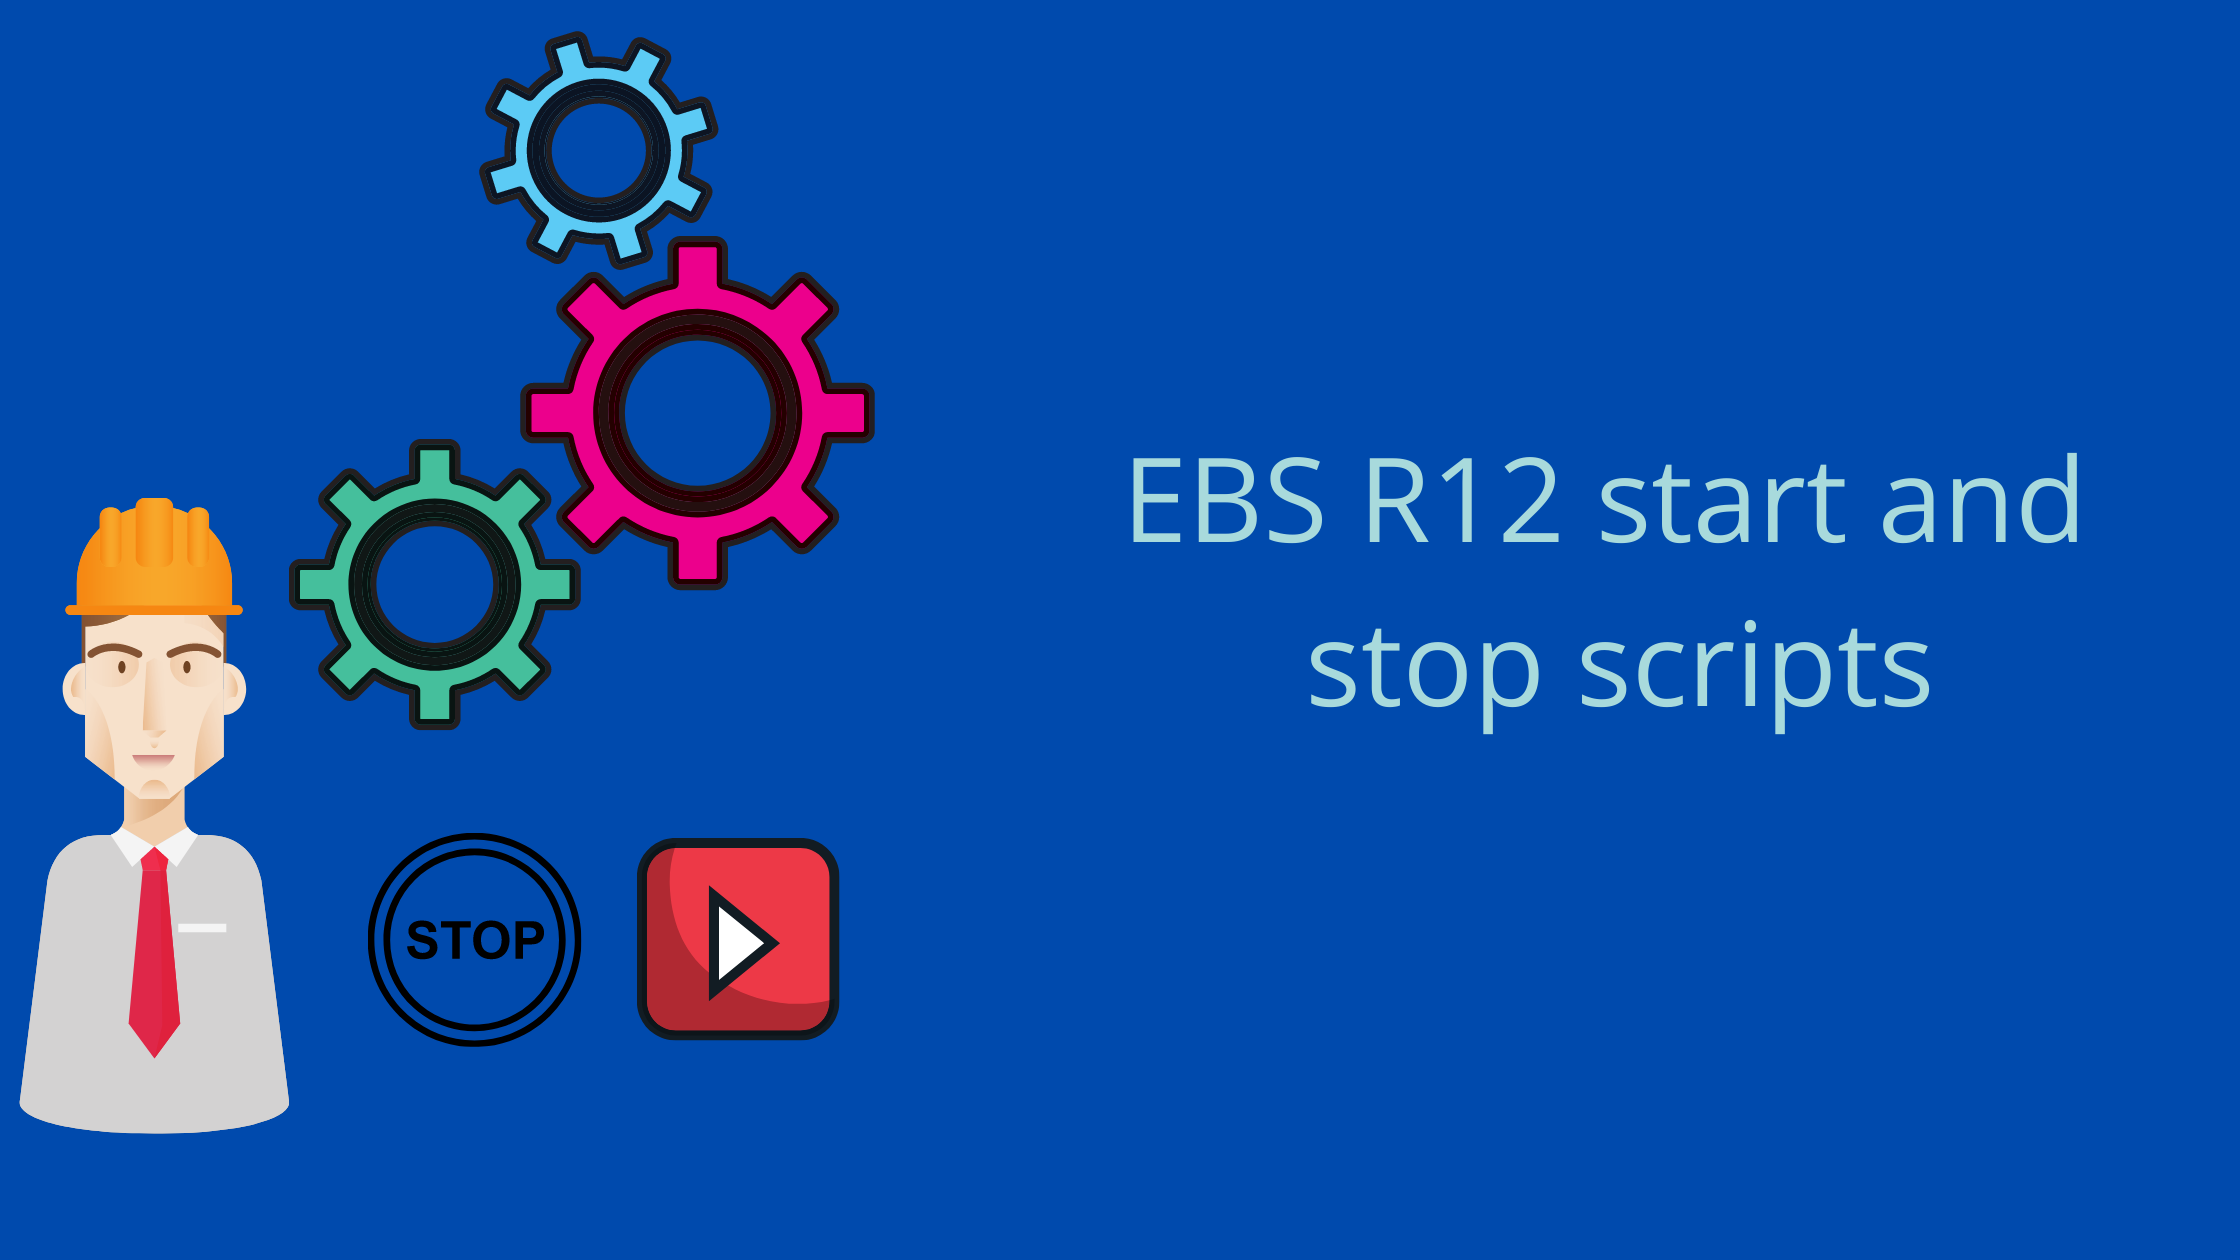 EBS R12 start and stop scripts